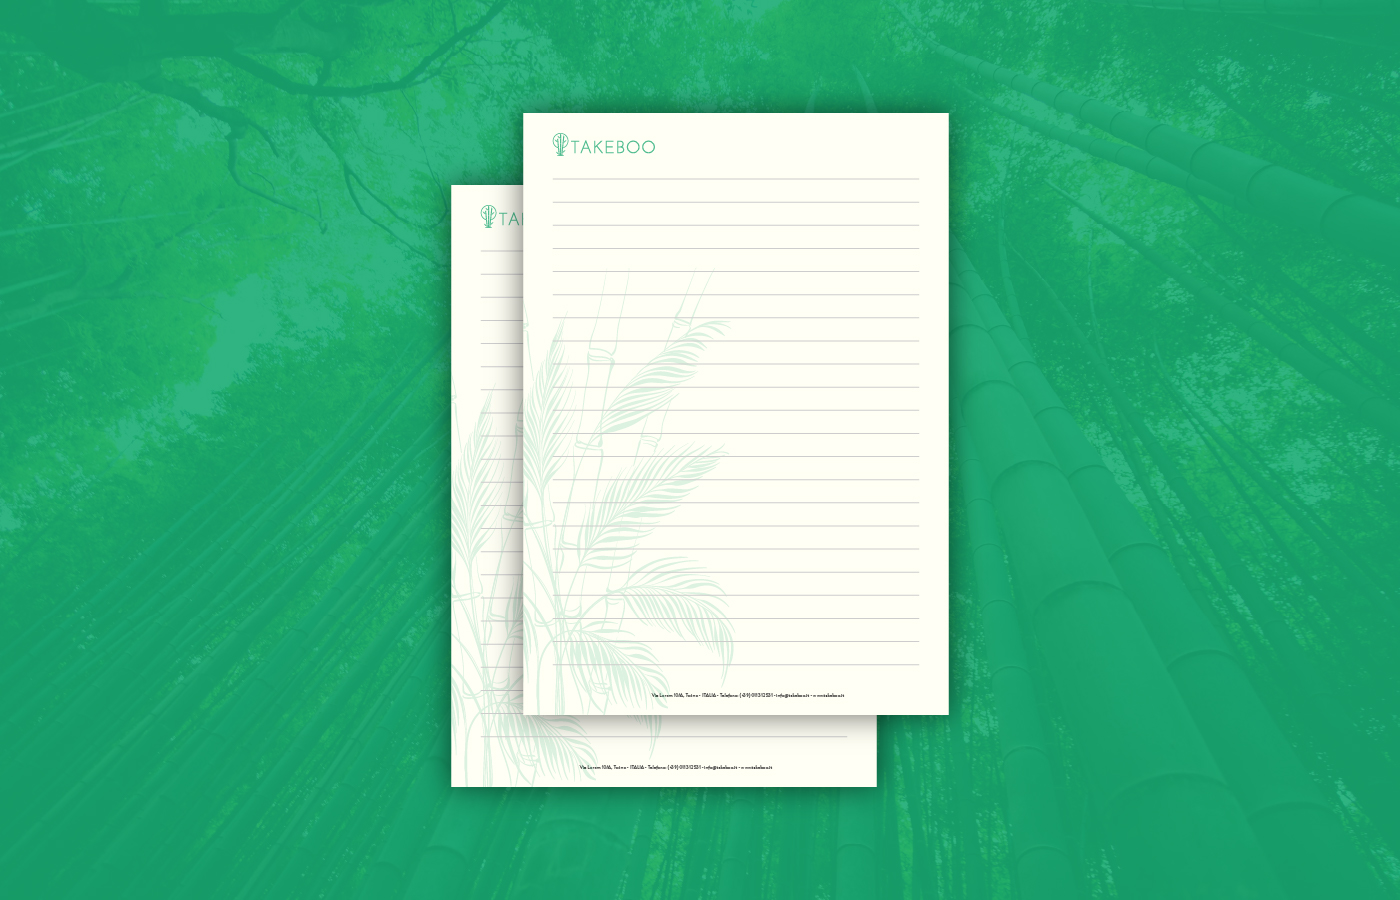 takeboo-letterhead